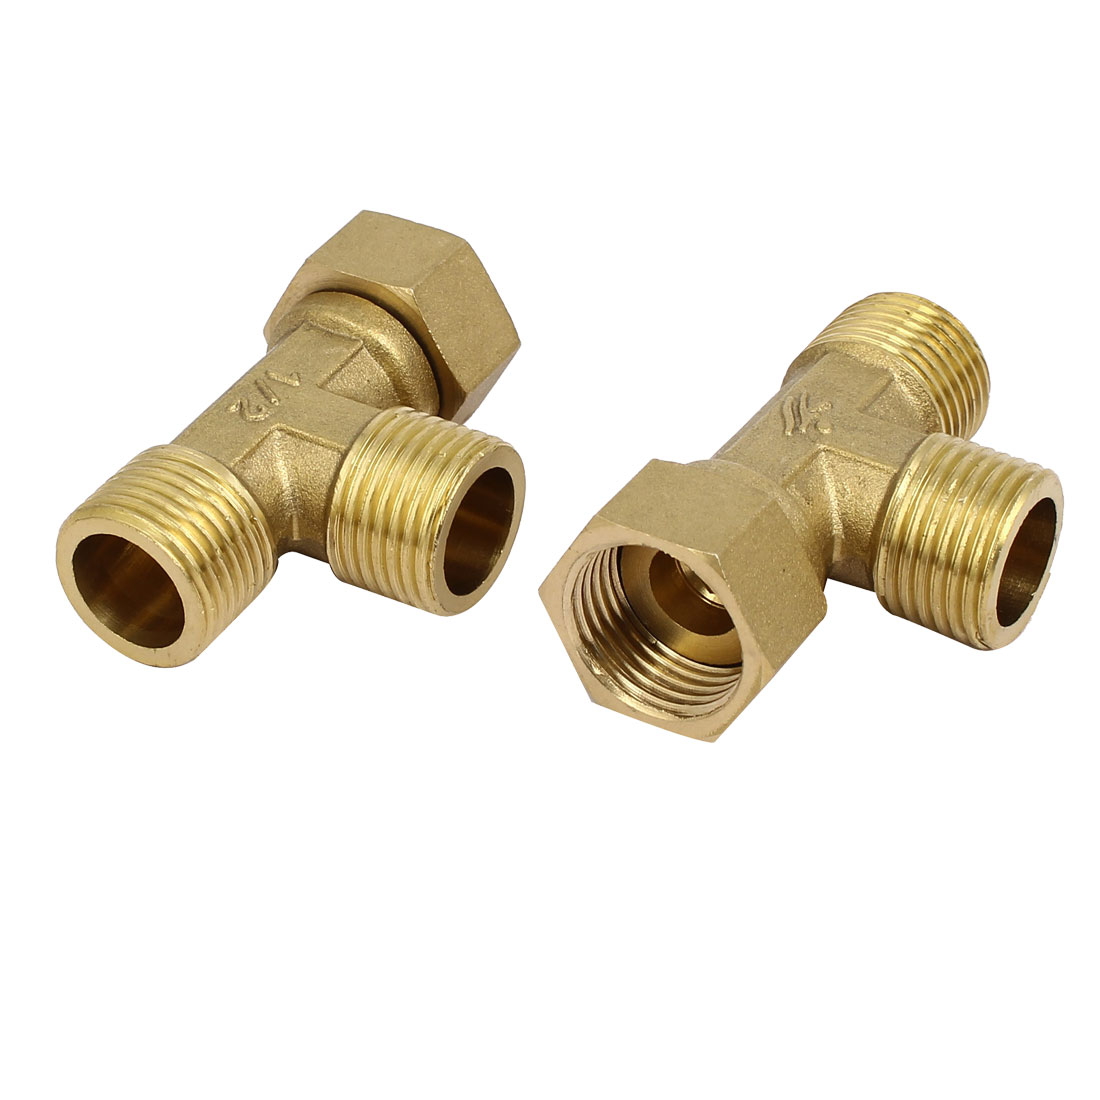 1/2BSP Brass Male Female Threaded 3-Way Pipe Fittings Couplers Connectors 2pcs